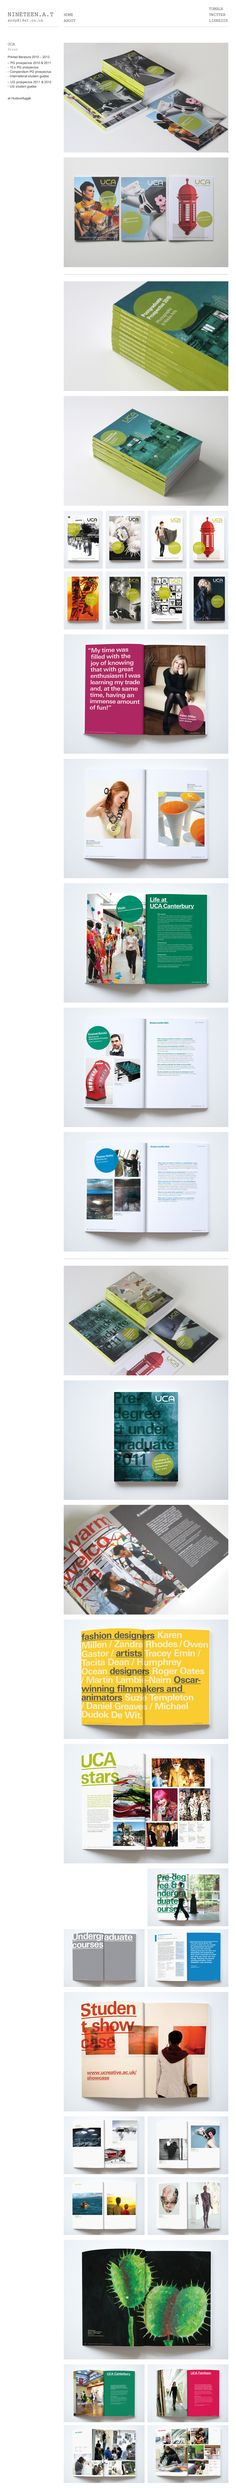 Architectural Brochure Template #Brochuredesign #Corporatebrochure